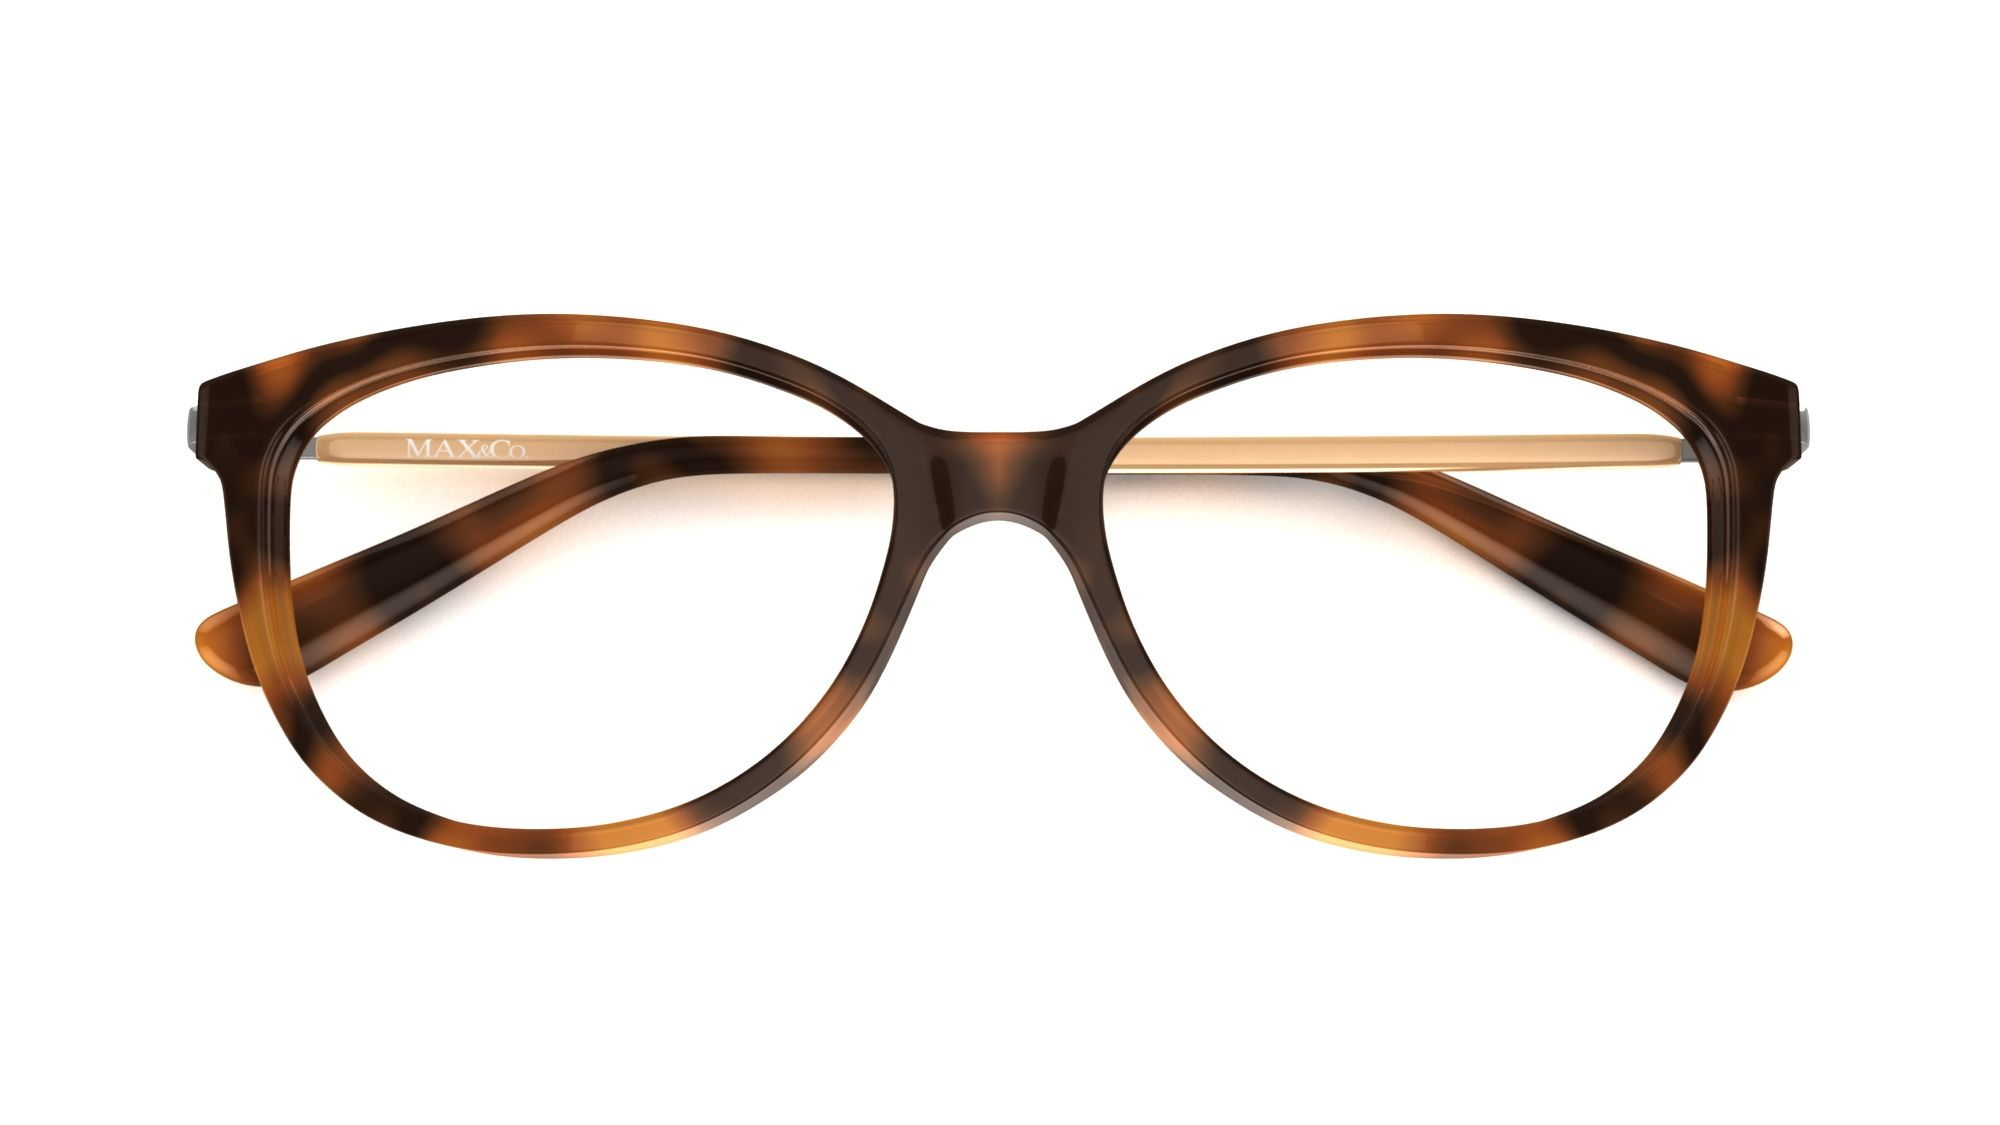 d74f4578d054 Max and Co glasses - MAX AND CO 02 | Glasses | Womens glasses ...